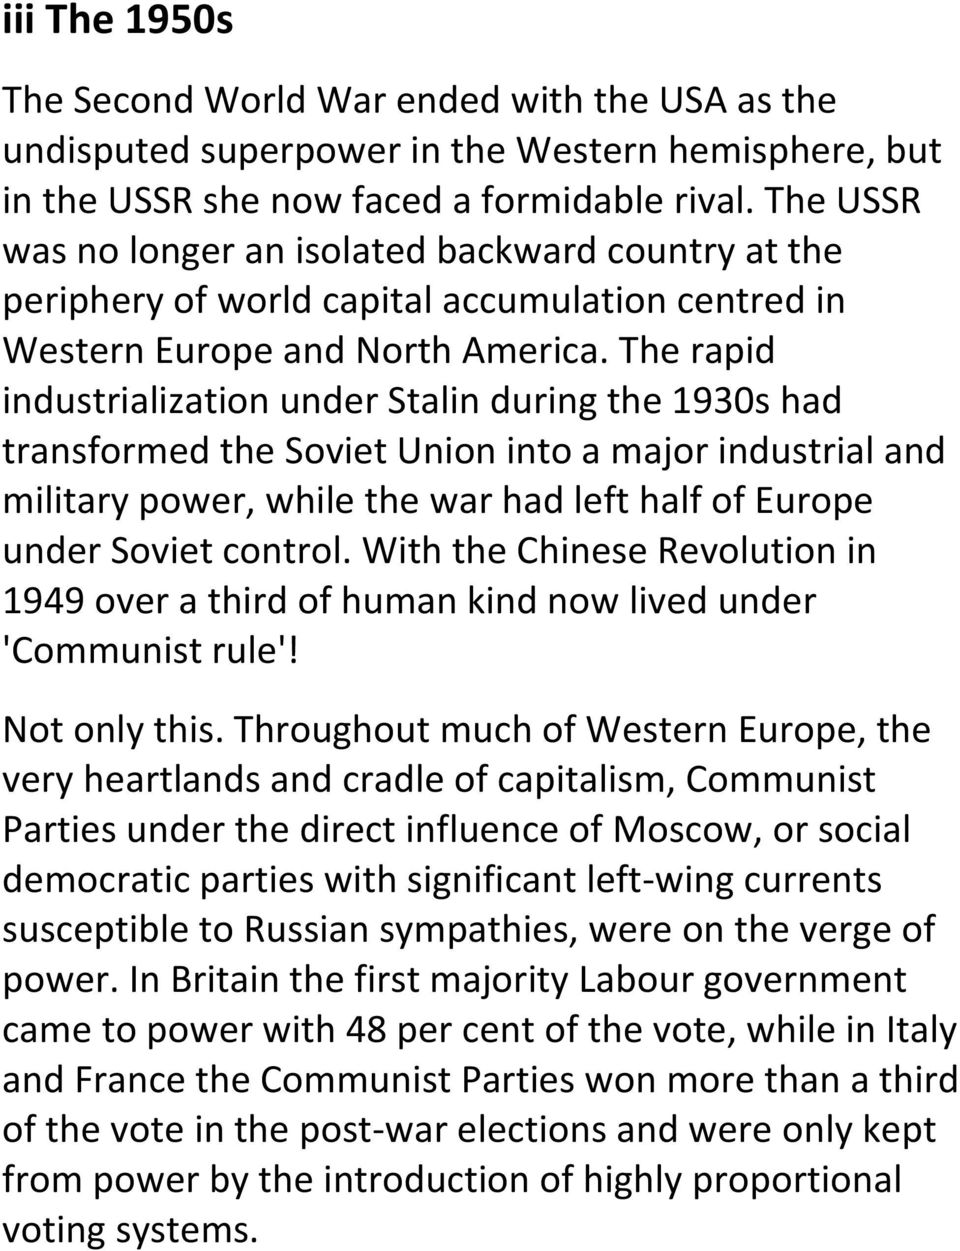 The rapid industrialization under Stalin during the 1930s had transformed the Soviet Union into a major industrial and military power, while the war had left half of Europe under Soviet control.